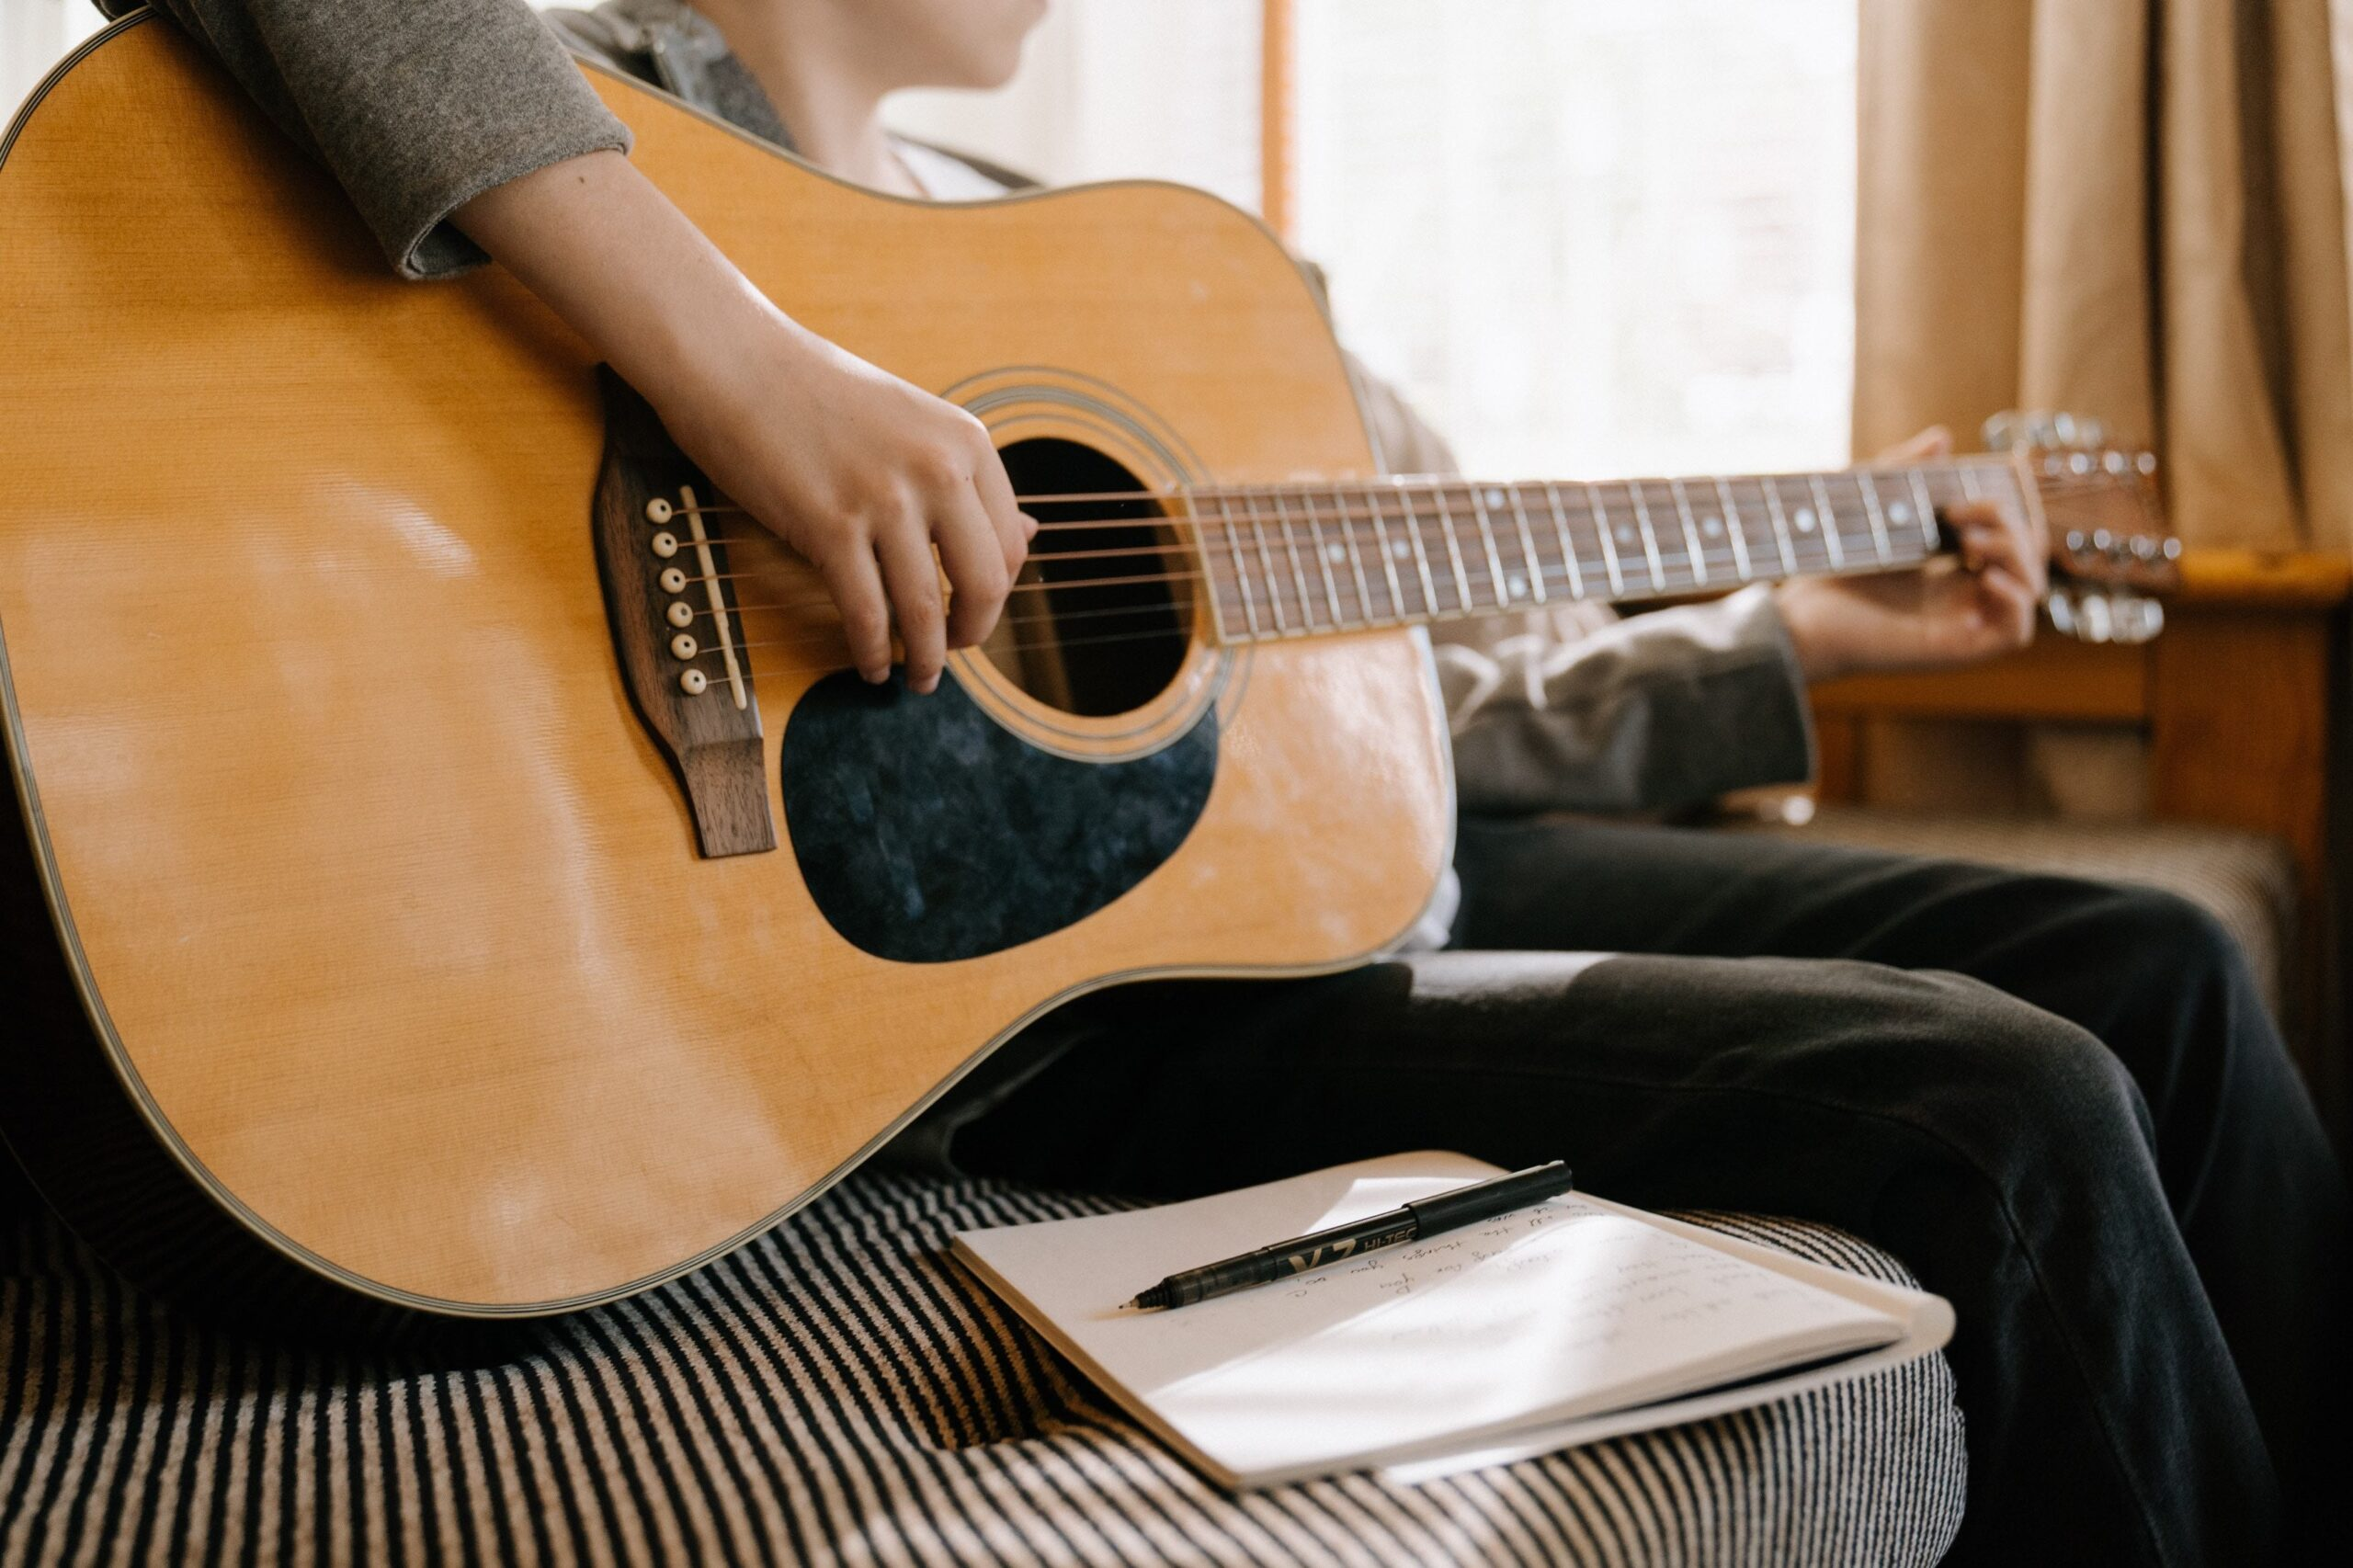 songwriting tips, techniques and advice for beginners